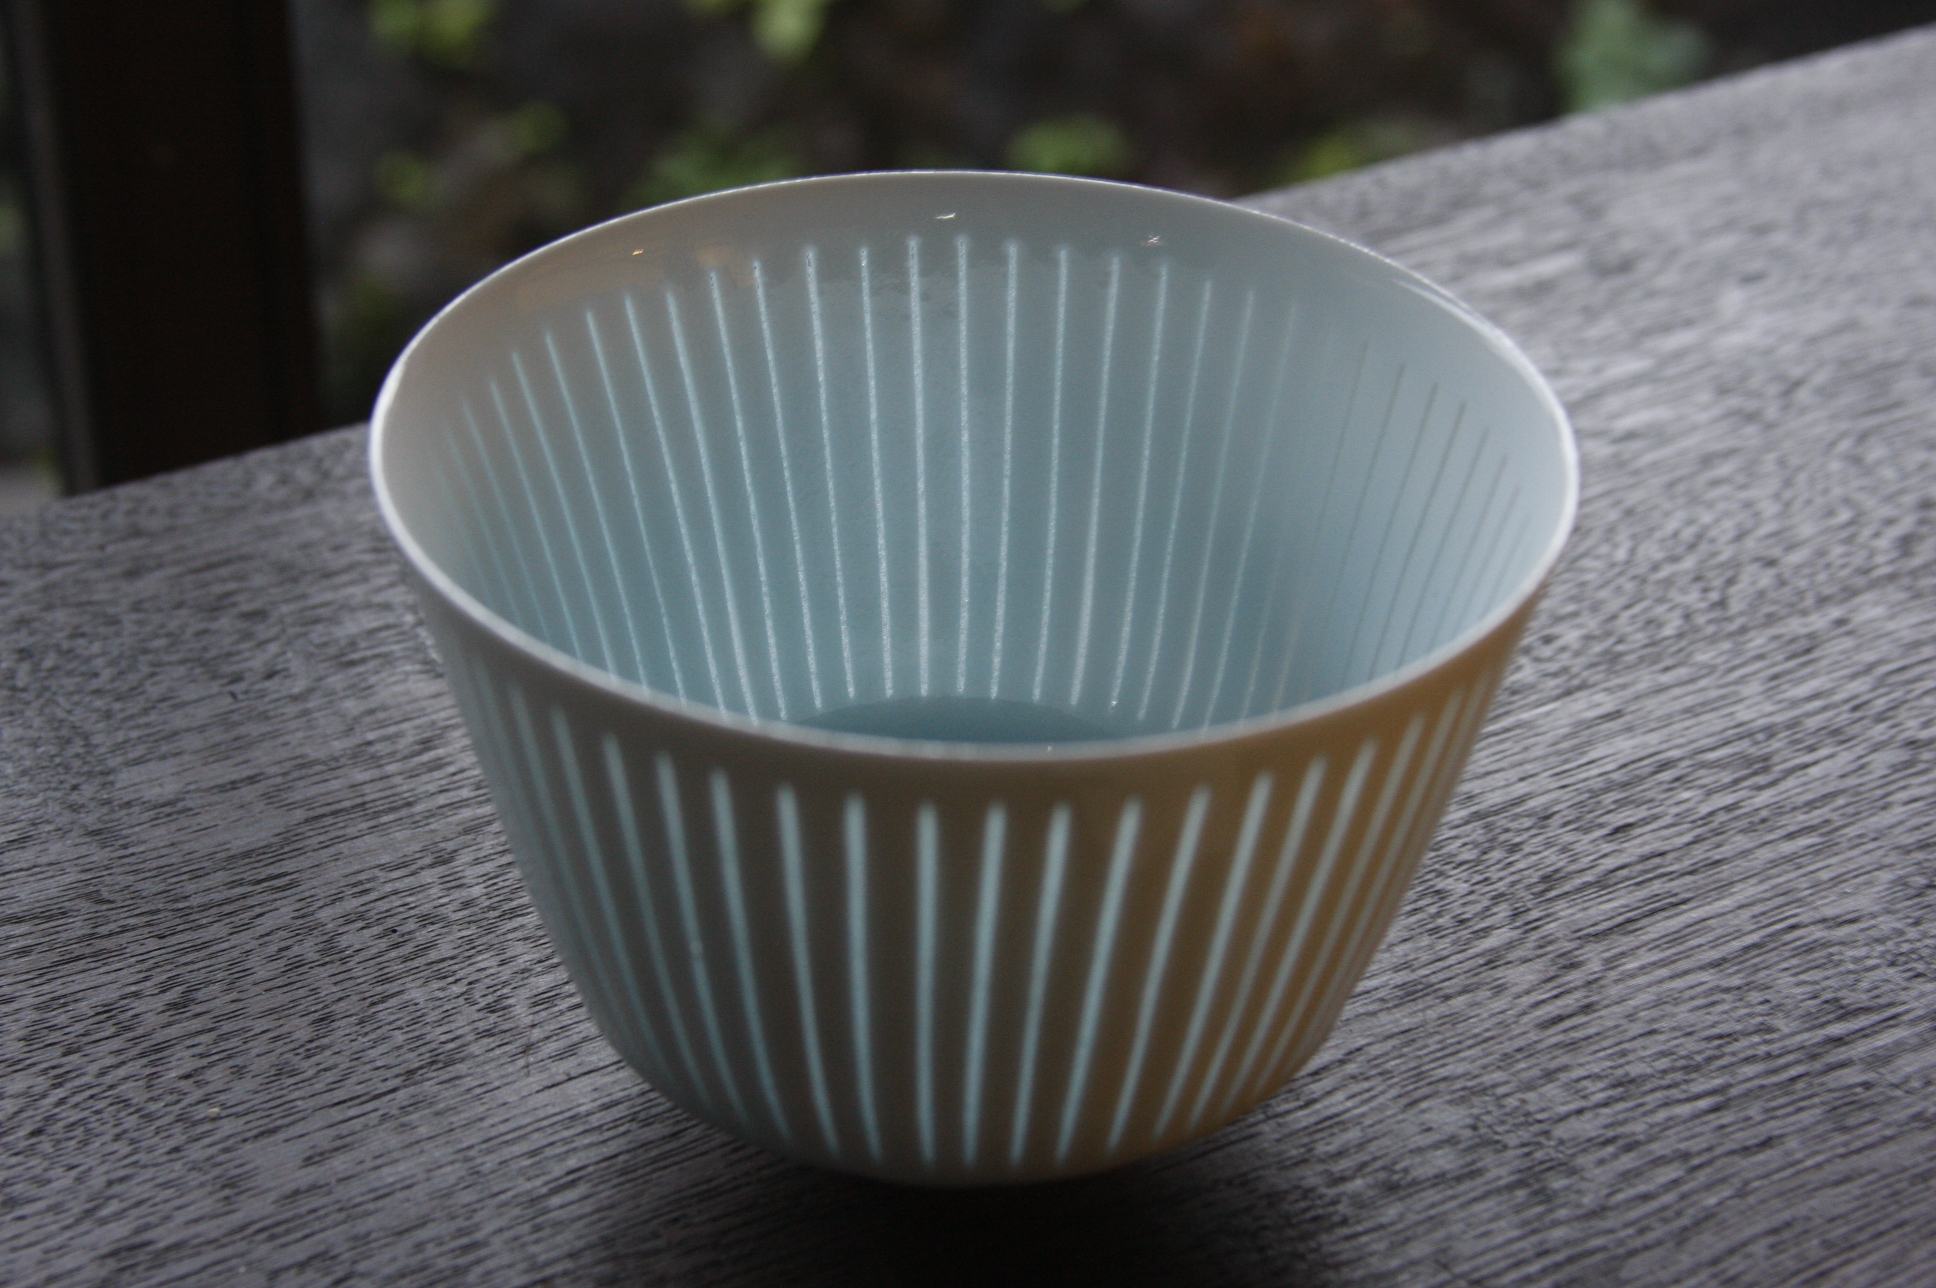 A cup with Ikura's signature style translucent stripes